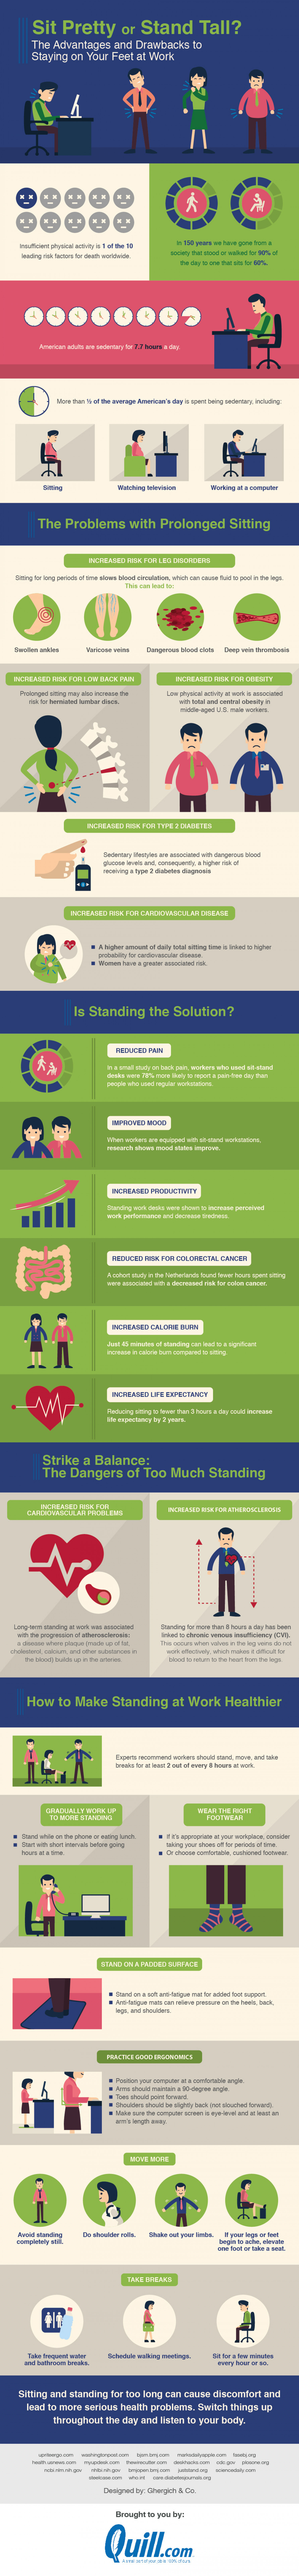 The Advantages and Drawbacks to Staying on Your Feet at Work Infographic